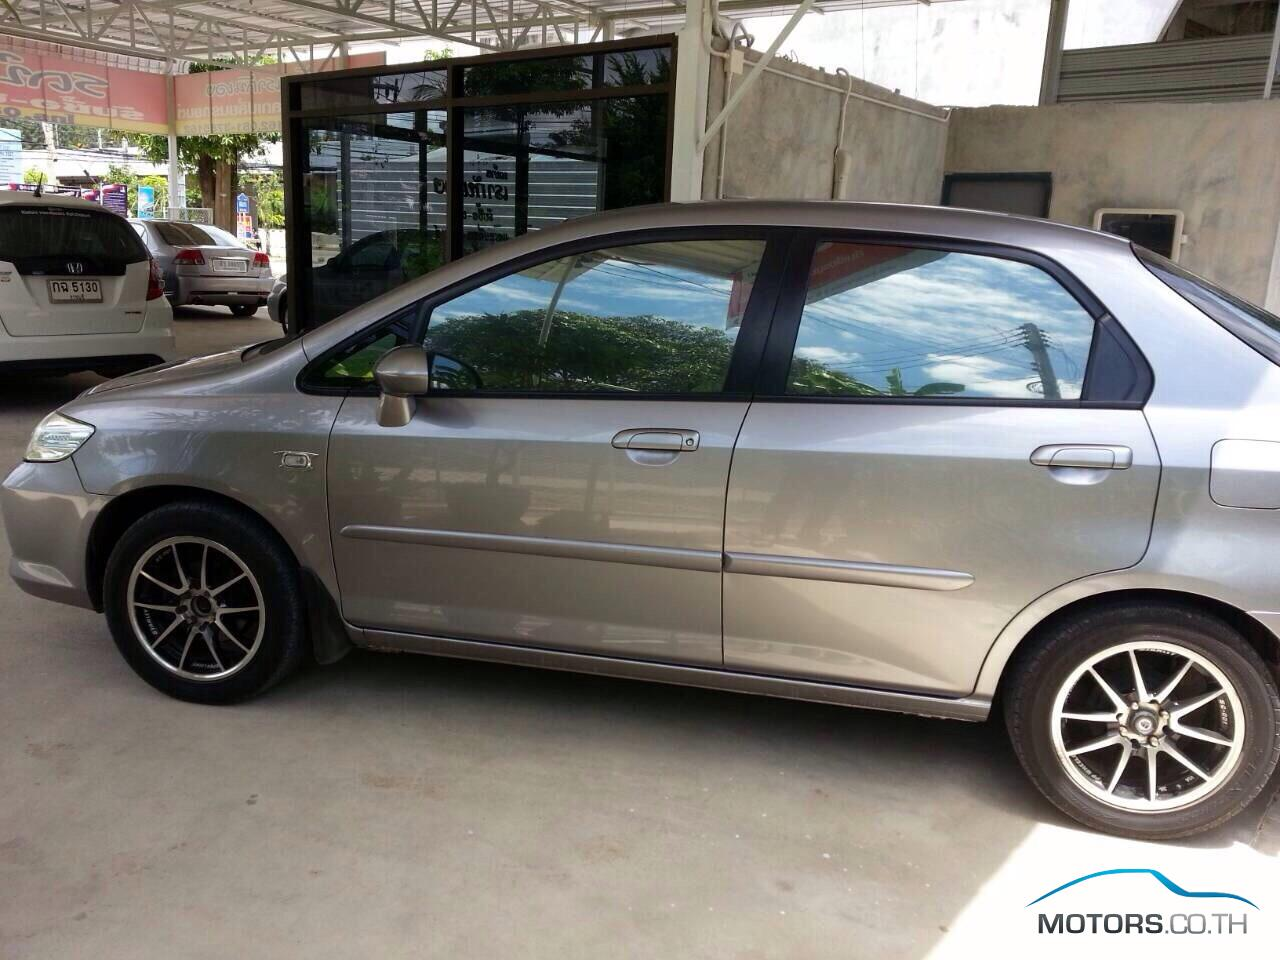 Secondhand HONDA CITY (2007)